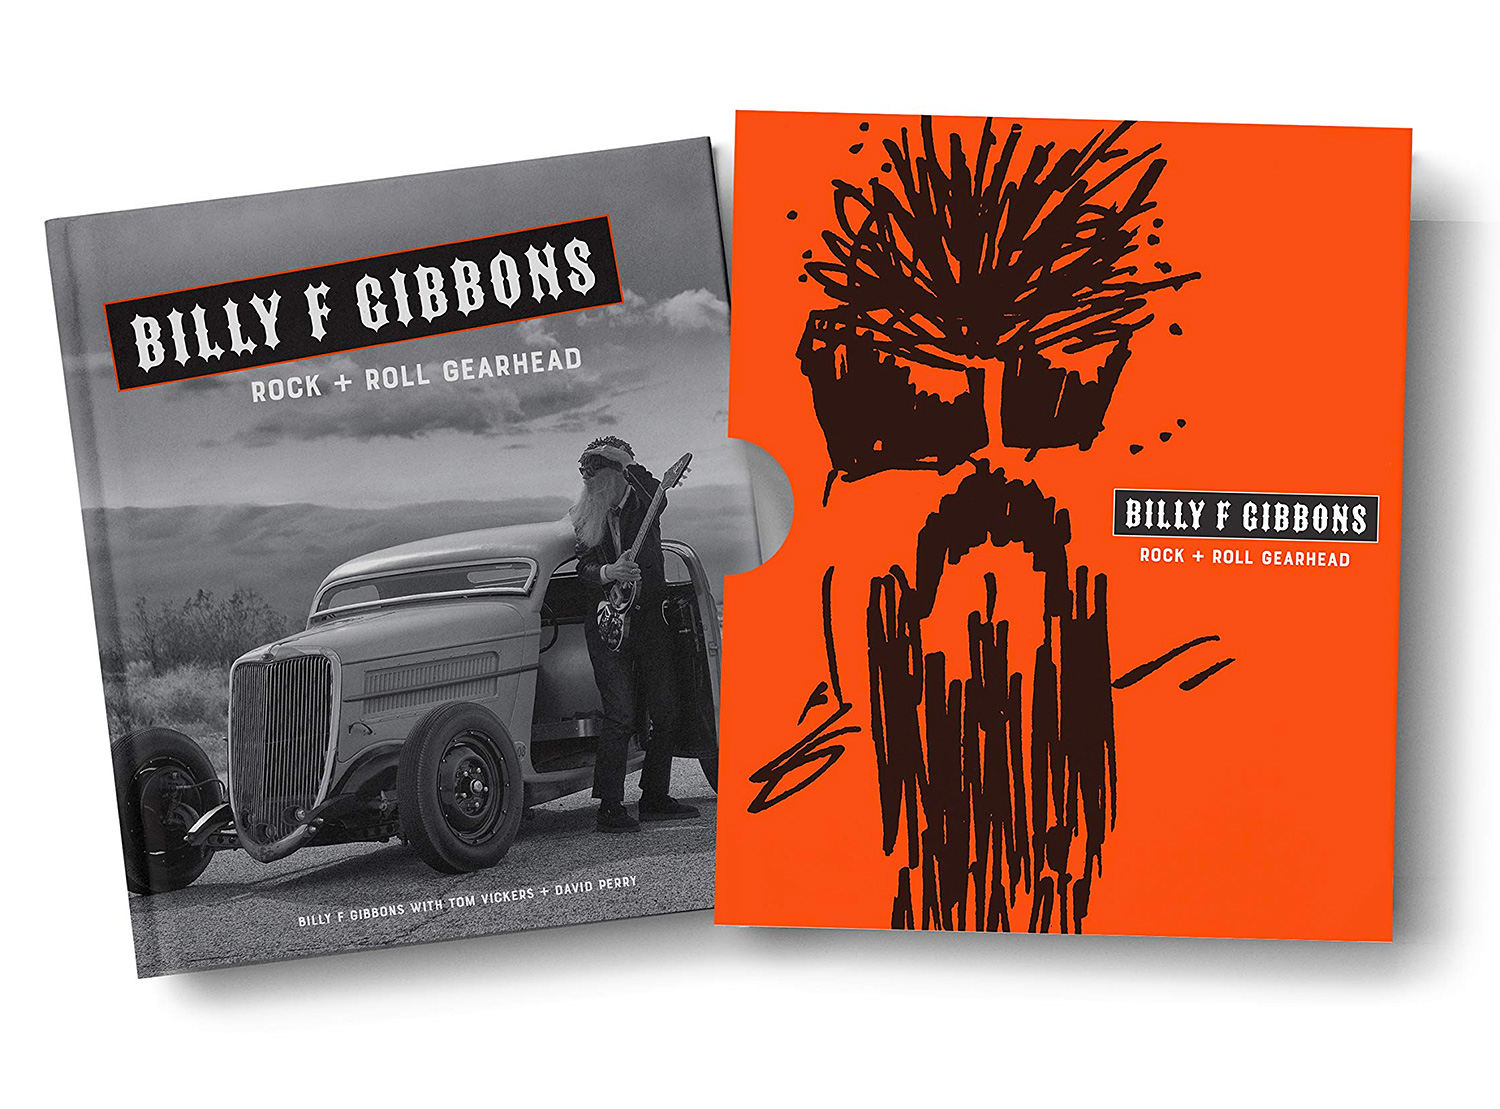 Billy F Gibbons: Rock + Roll Gearhead at werd.com